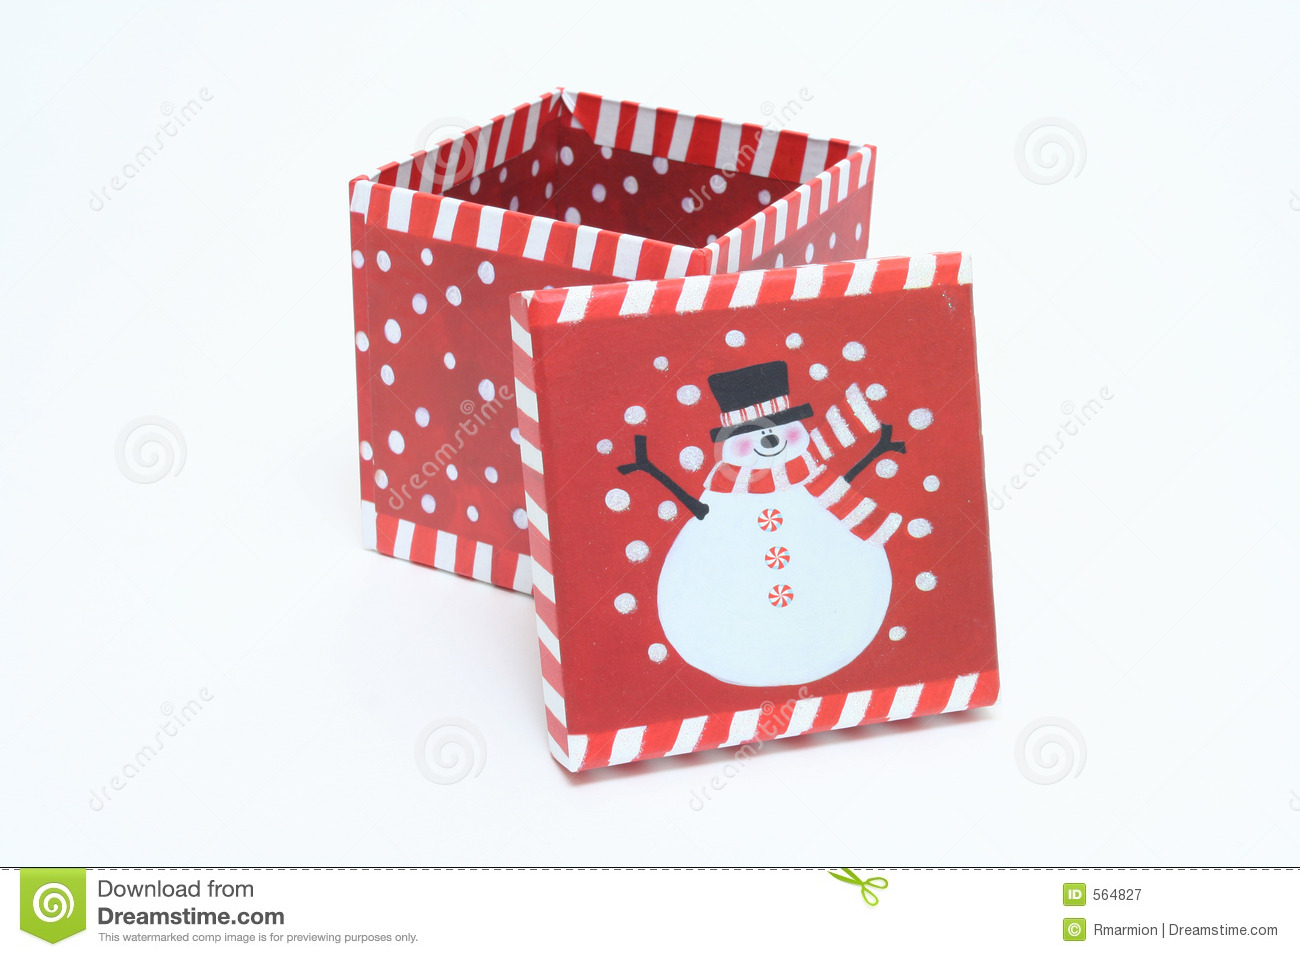 Delightful Christmas Box Decorations Part - 1: Royalty-Free Stock Photo. Download Christmas Box Decorations ...